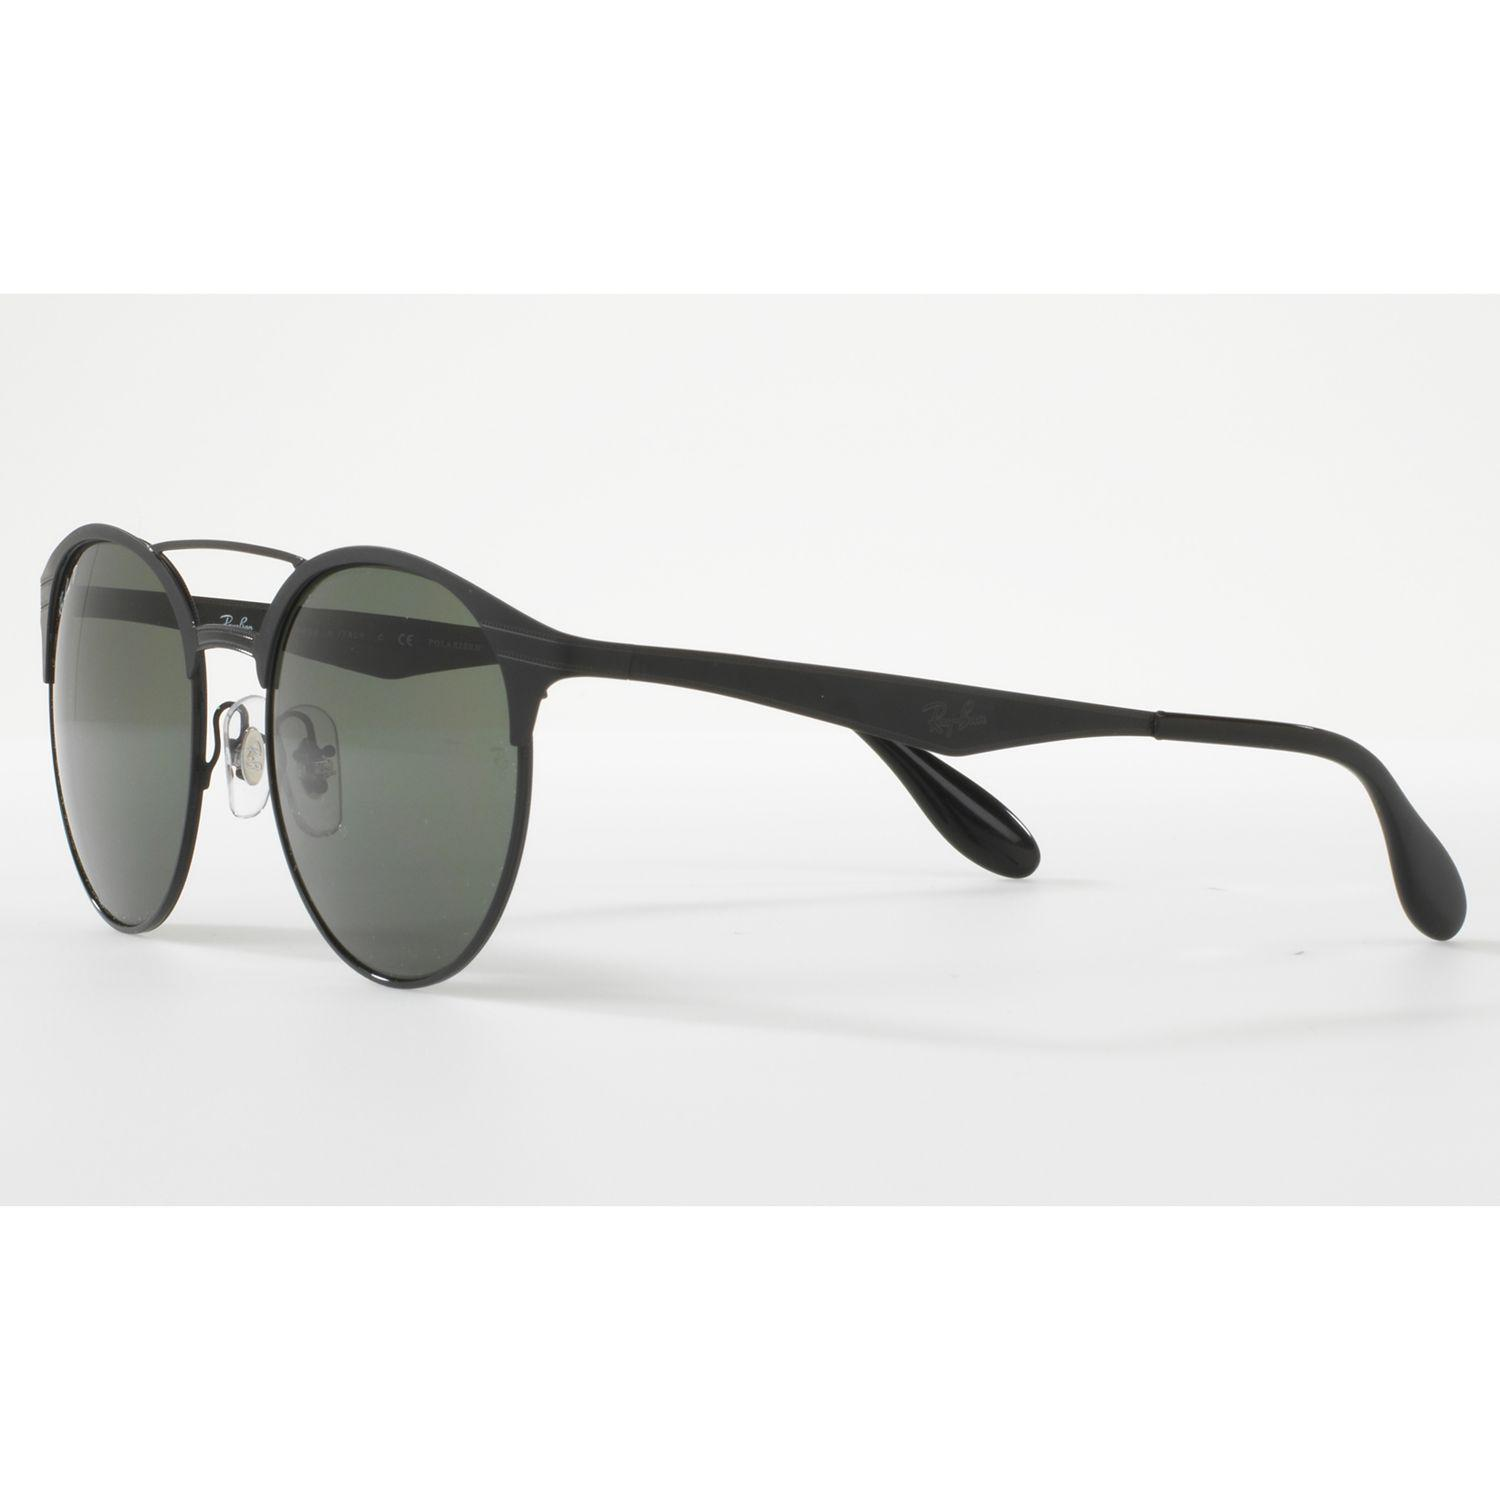 123e2d665b886 Ray-Ban - Green Rb3545 Polarised Oval Sunglasses - Lyst. View fullscreen